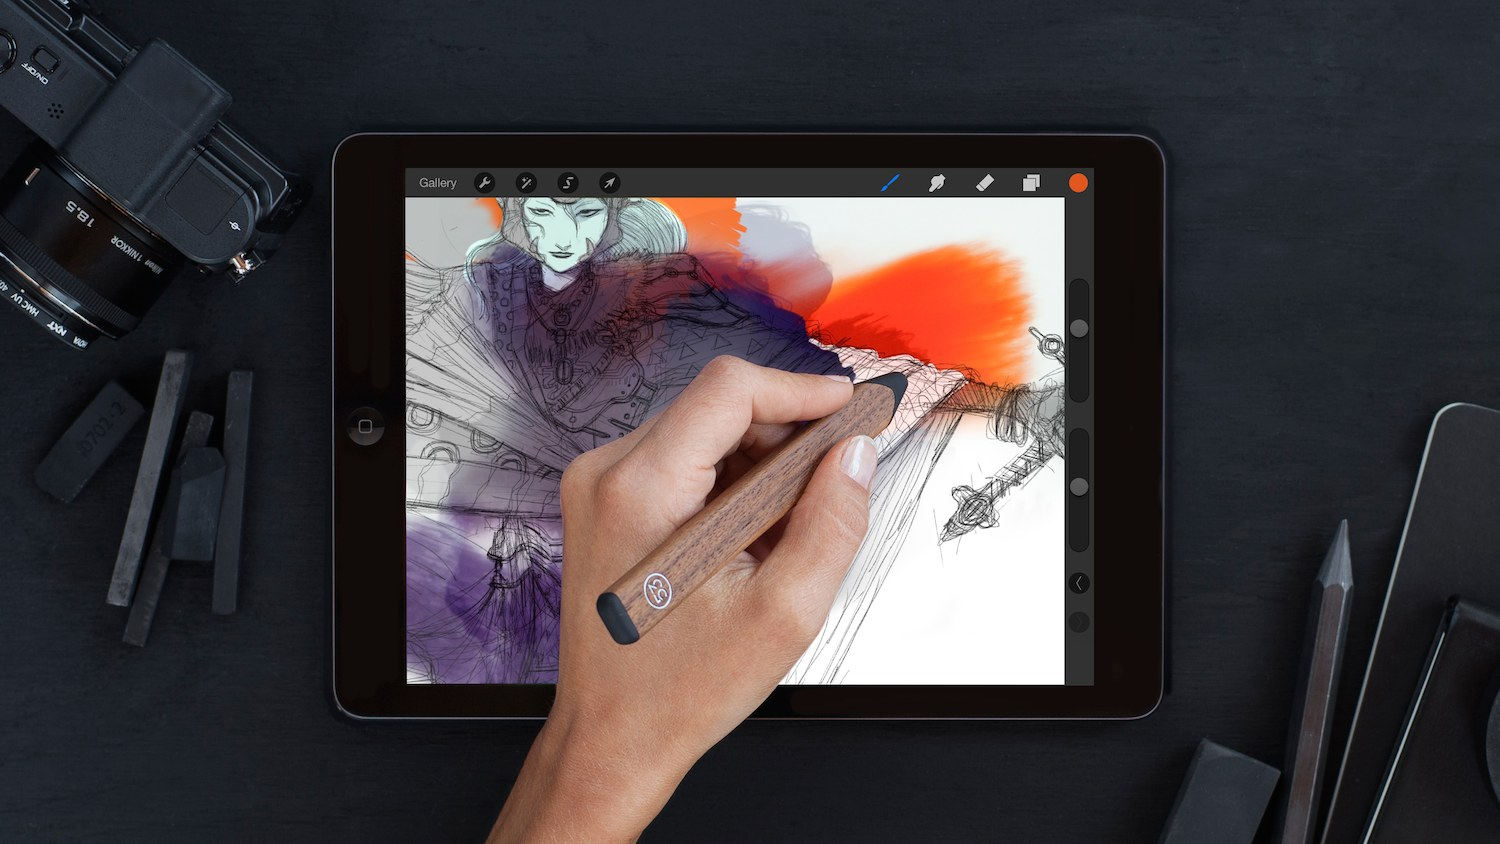 The FiftyThree SDK has been implemented by Procreate, allowing it to fully support the Pencil Stylus